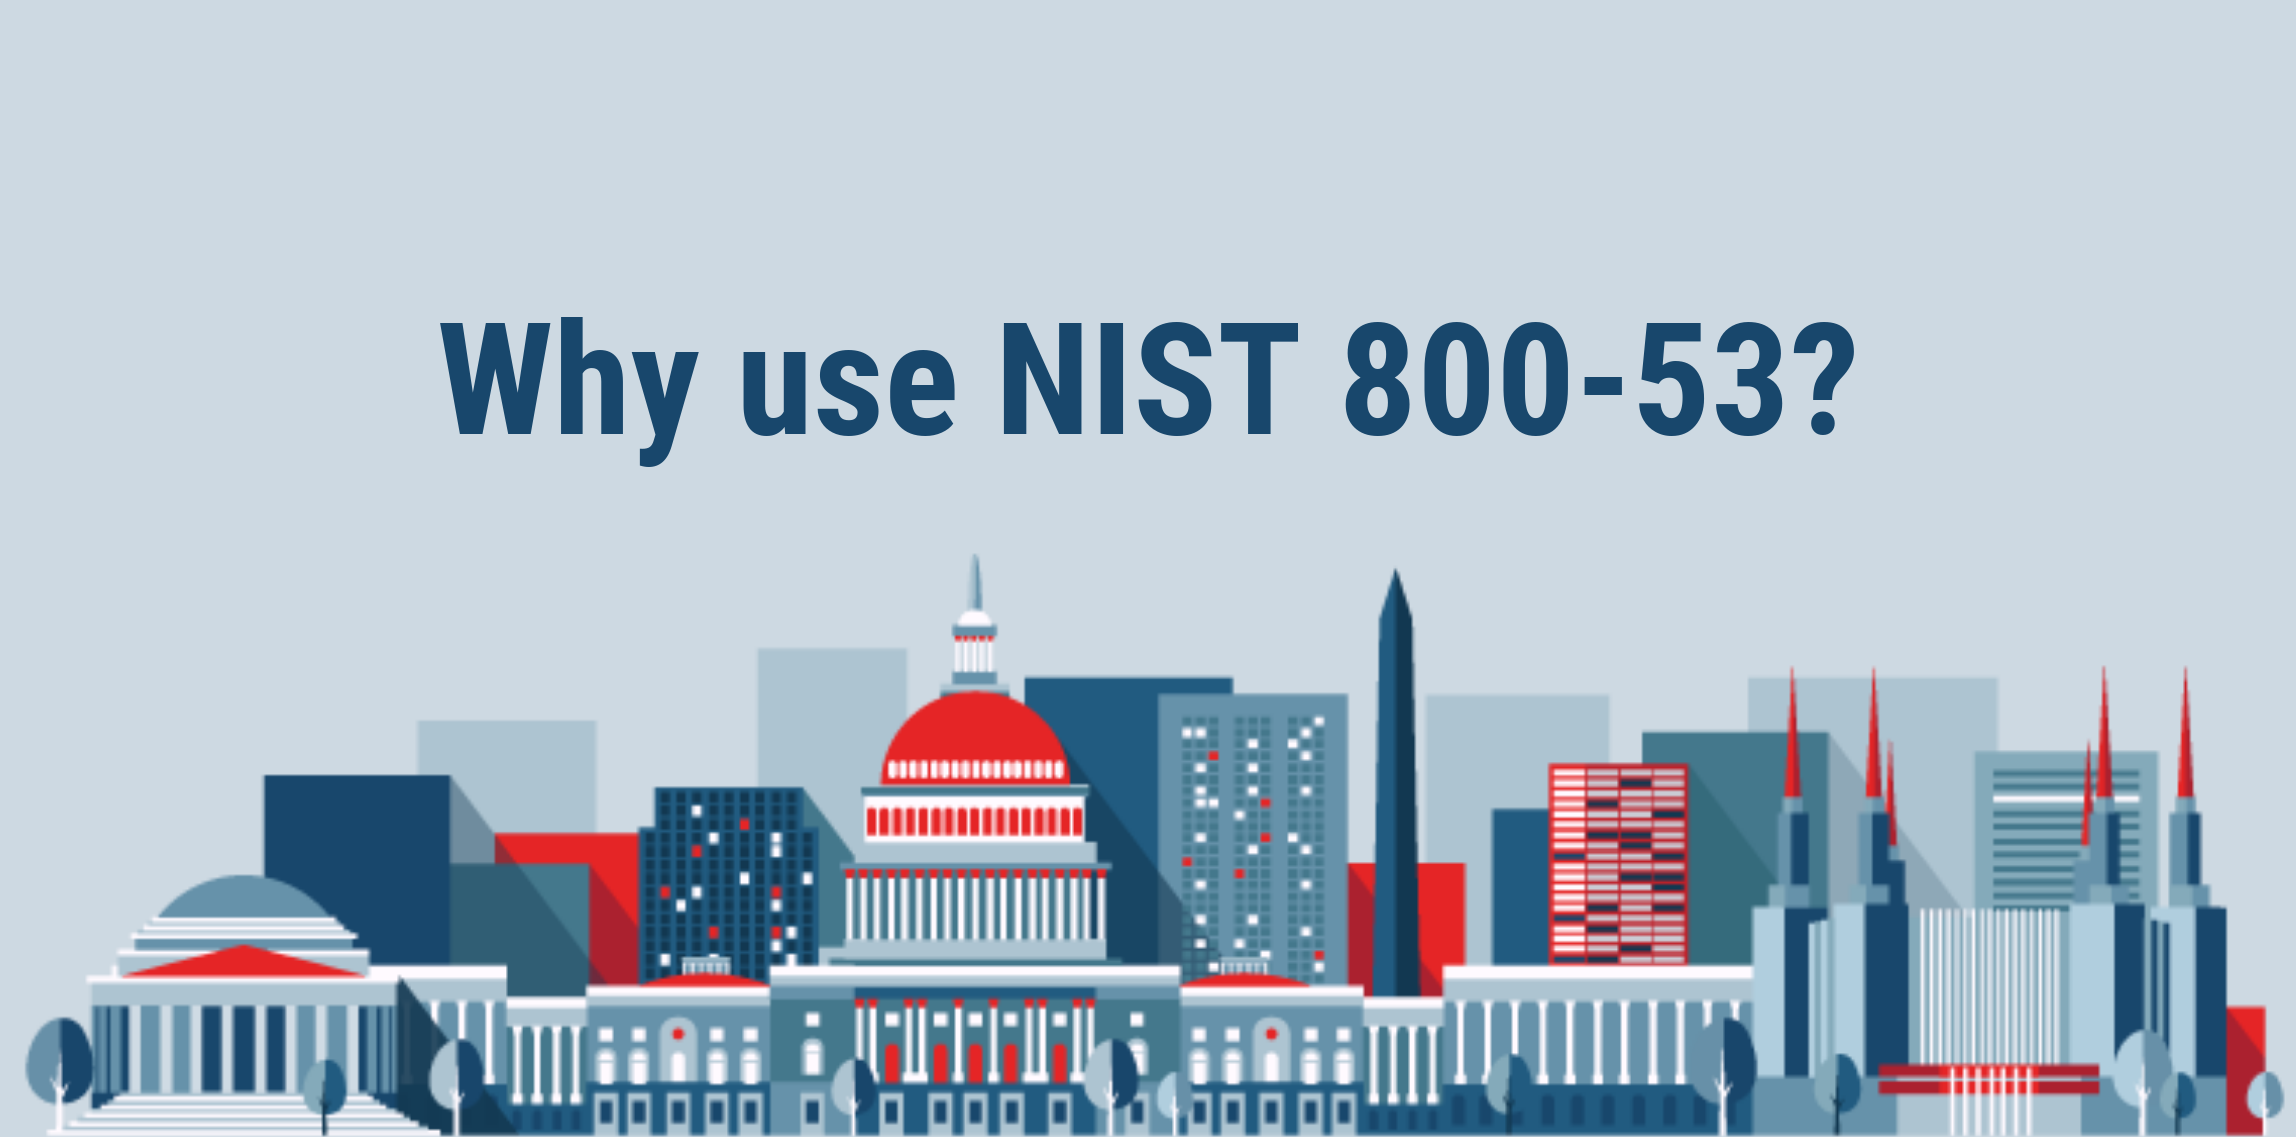 NIST Background